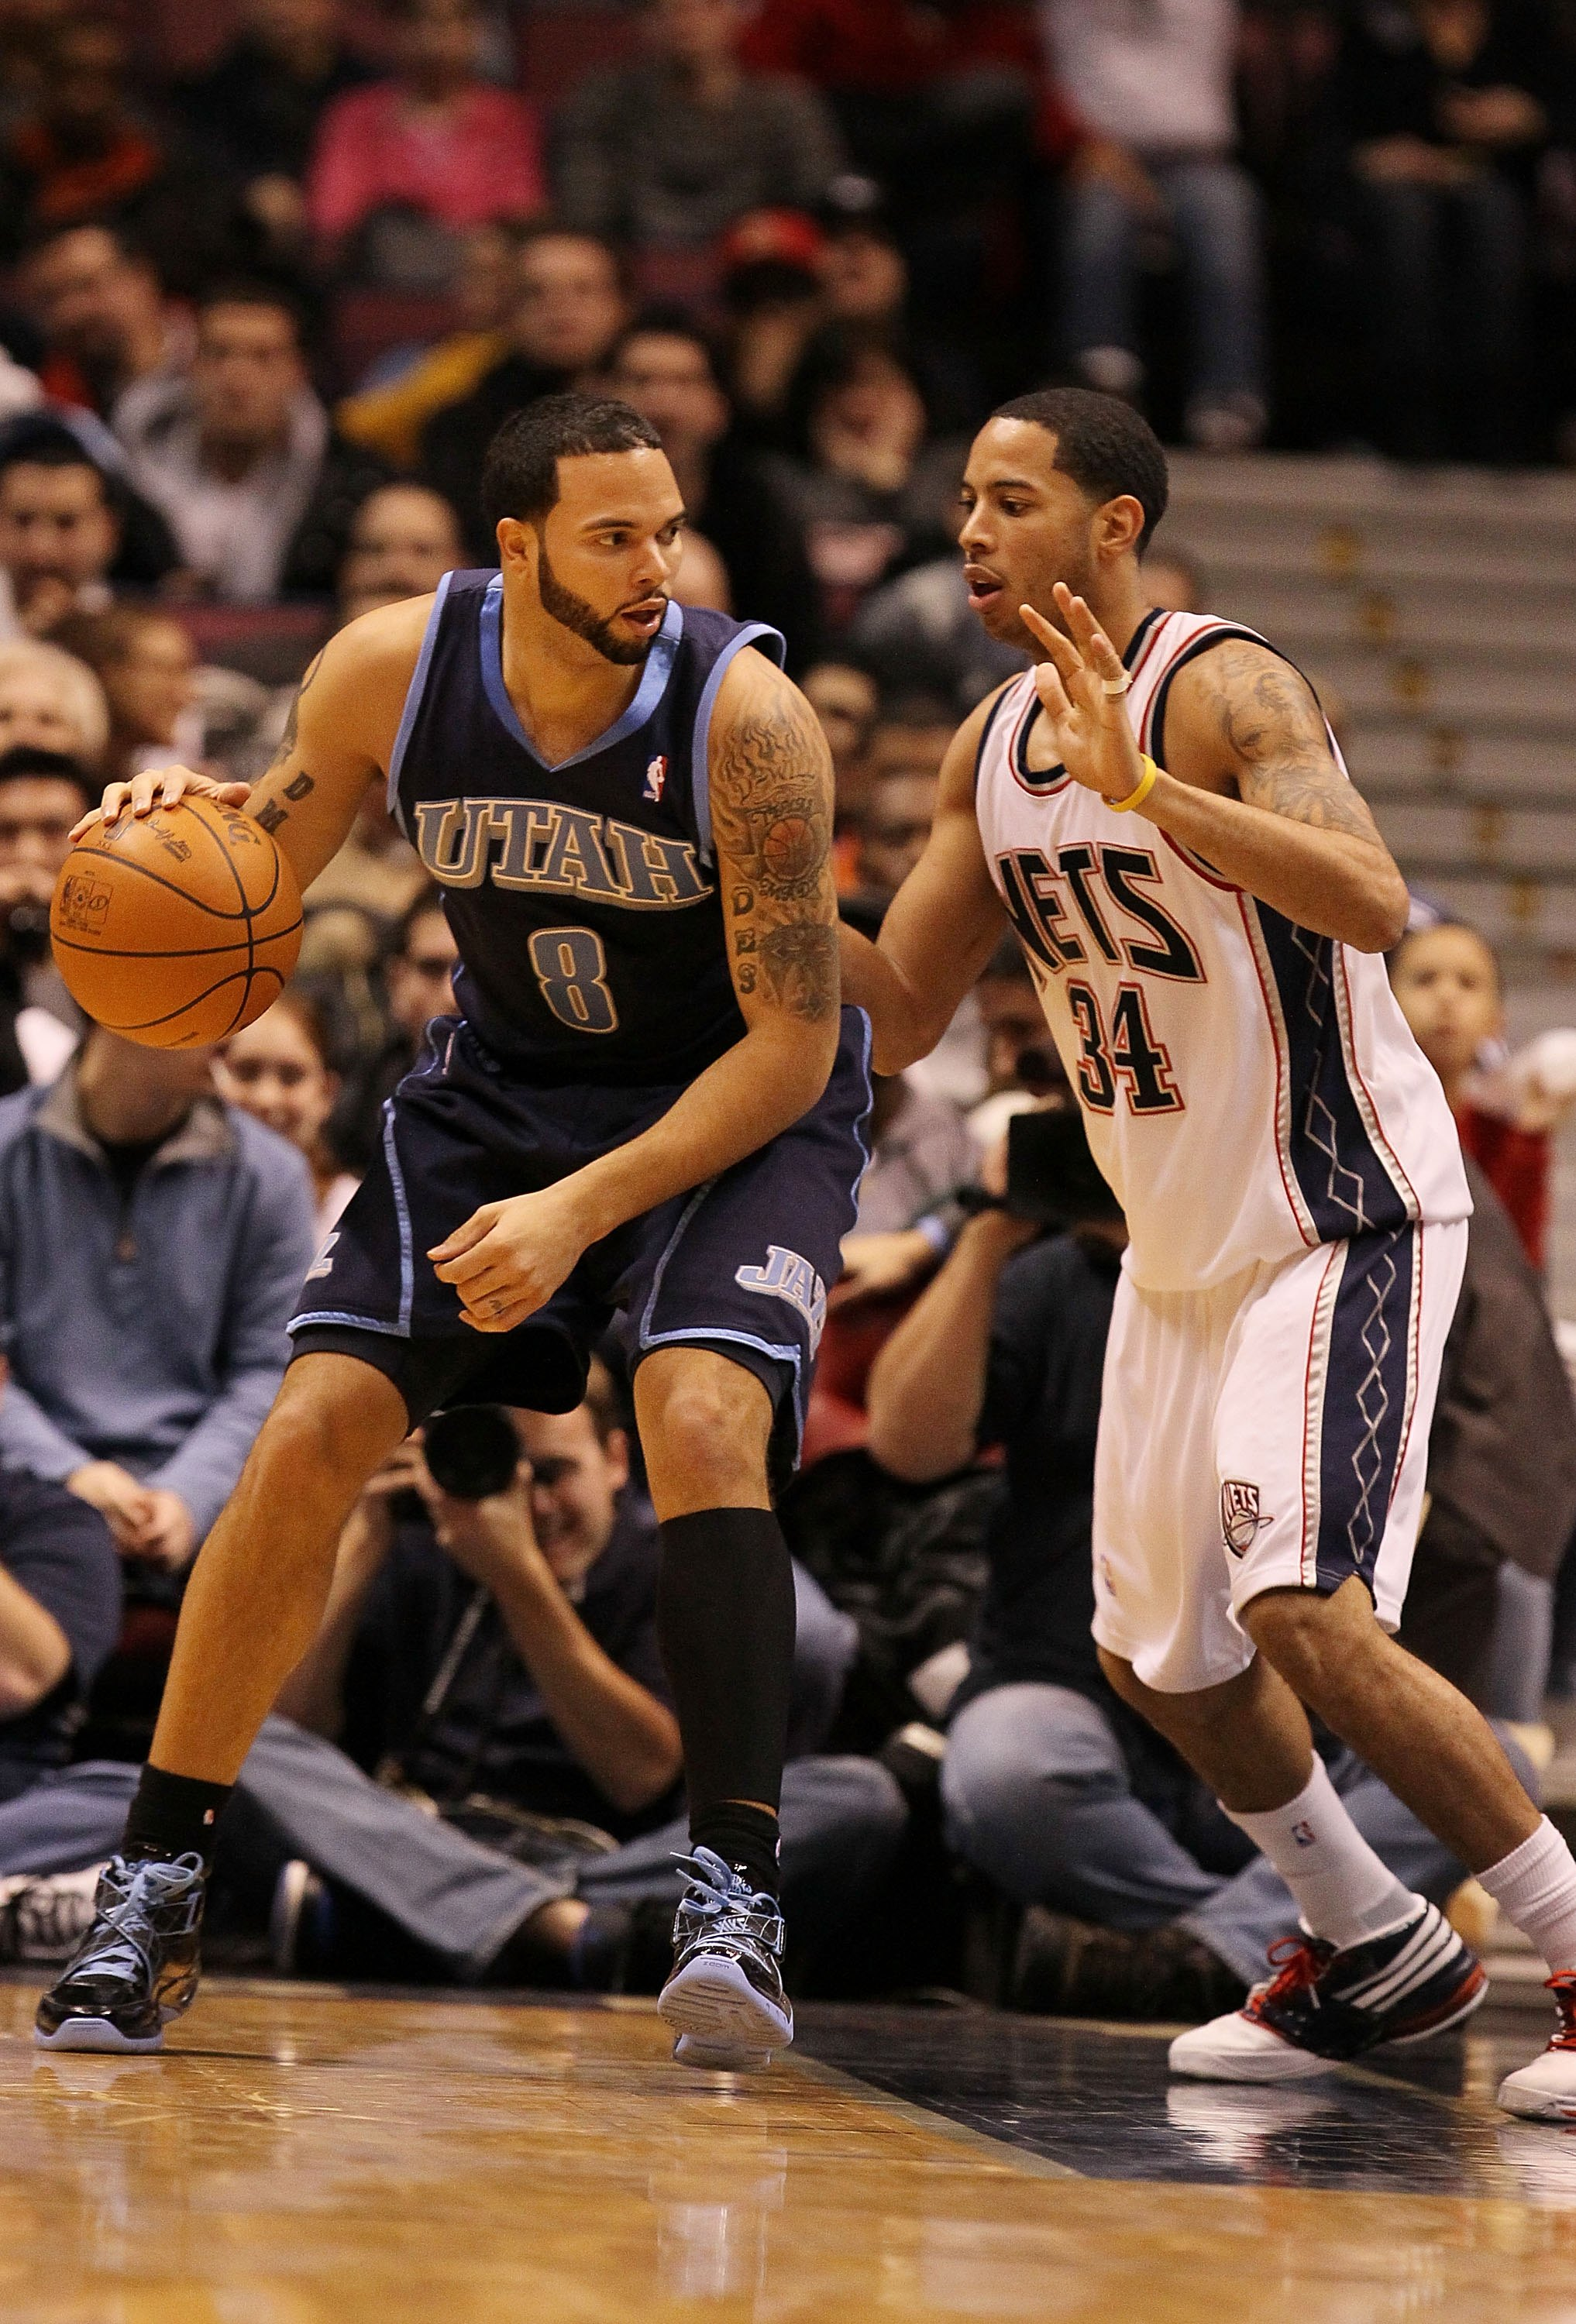 EAST RUTHERFORD, NJ - DECEMBER 16:  Devin Harris #34 of the New Jersey Nets guards Deron Williams #8 of The Utah Jazz during their game on December 16th, 2009 at The Izod Center in East Rutherford, New Jersey.  NOTE TO USER: User expressly acknowledges an